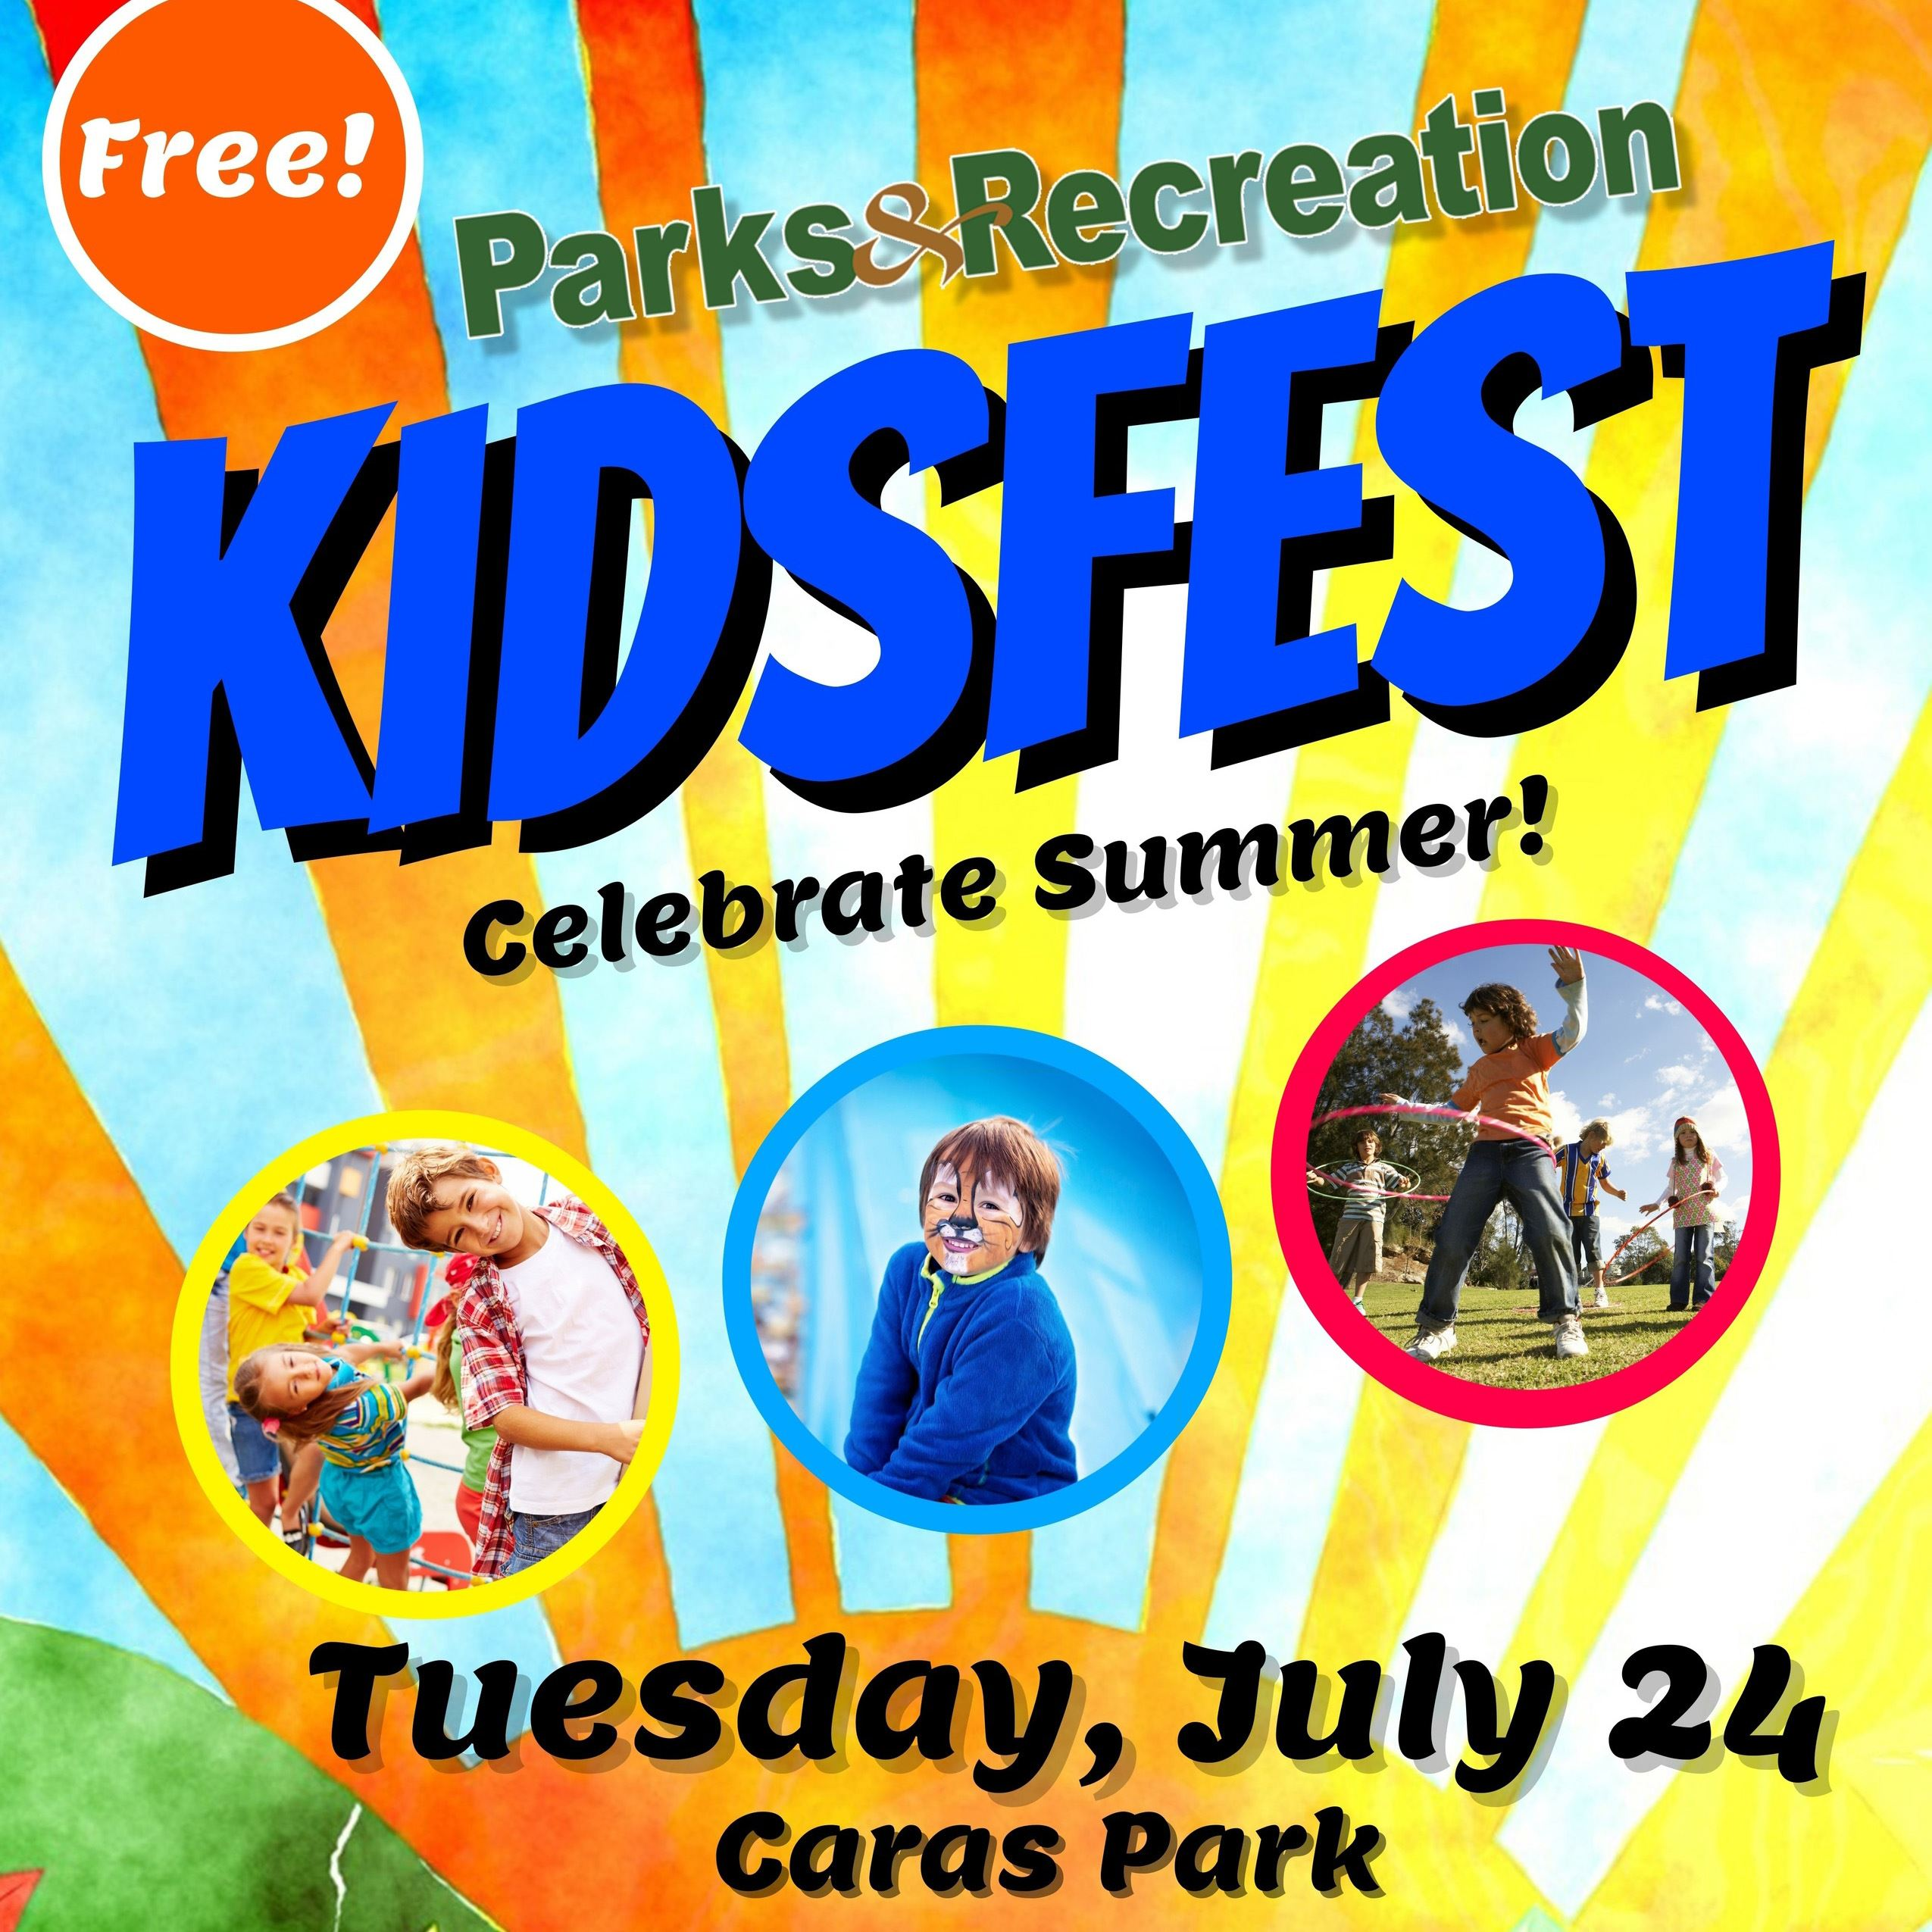 Copy of Summer Kids Fest Flyer Template 2